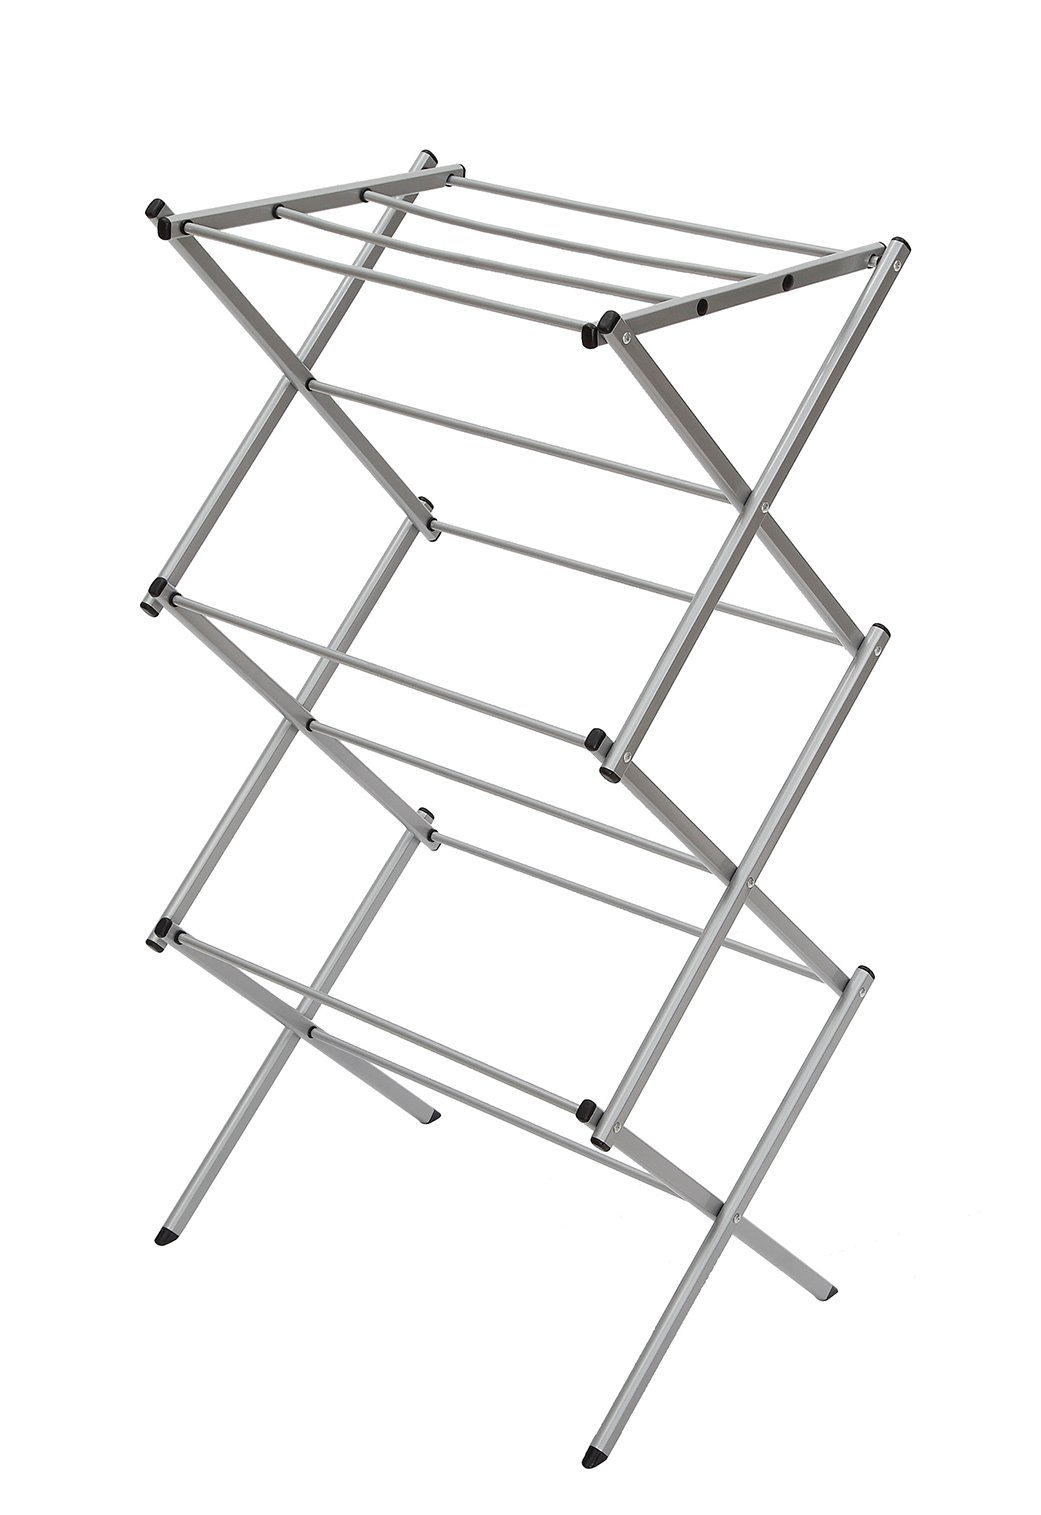 STORAGE MANIAC 3-tier Folding Anti-Rust Compact Steel Clothes Drying Rack - 22.44''x14.57''x41.34''